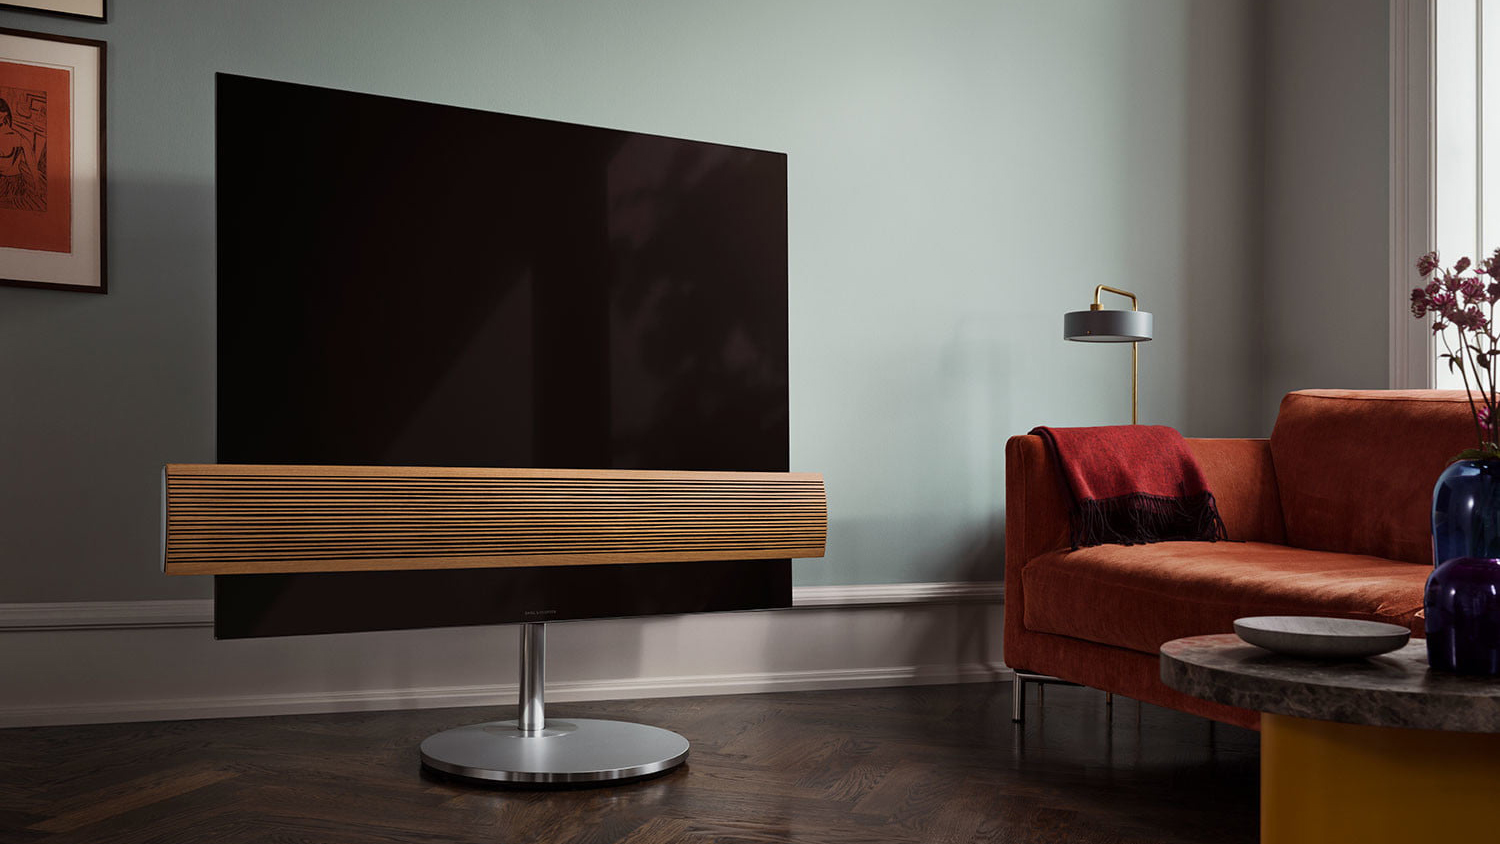 Best OLED TVs: our pick of the best OLED televisions you can buy